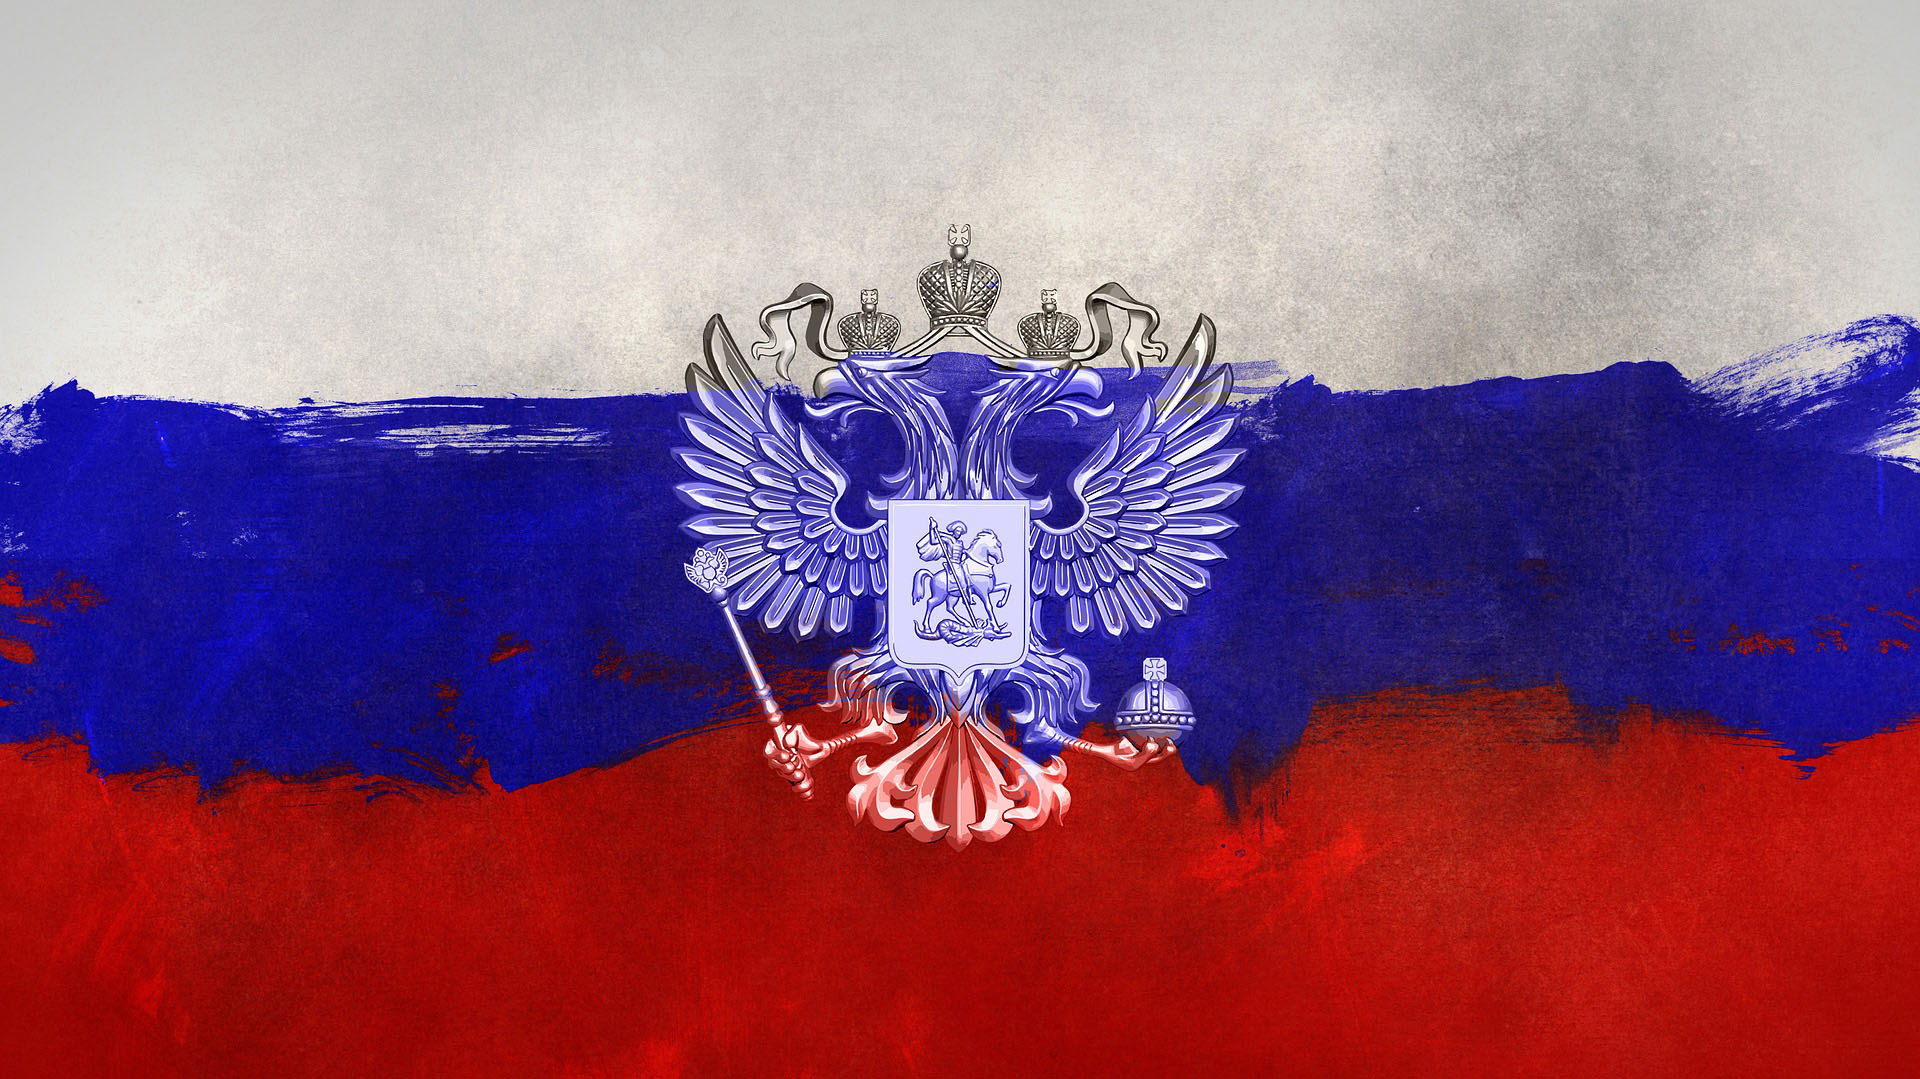 A painted version of a Russian flag